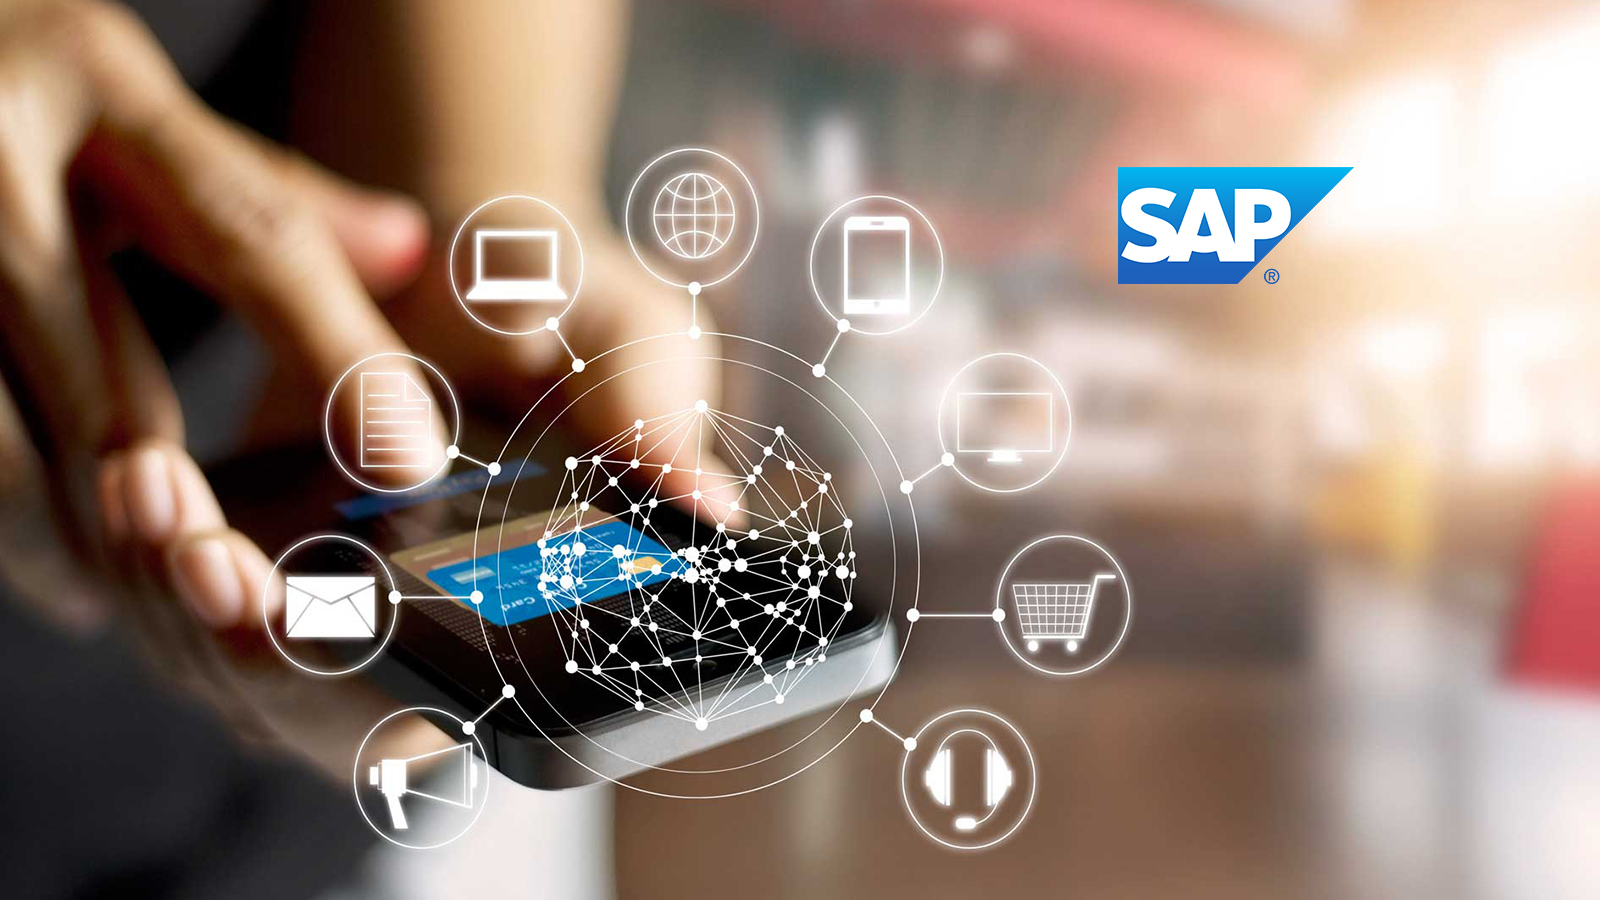 SAP Introduces Intelligent Capabilities For Digital Supply Chain 1600x900